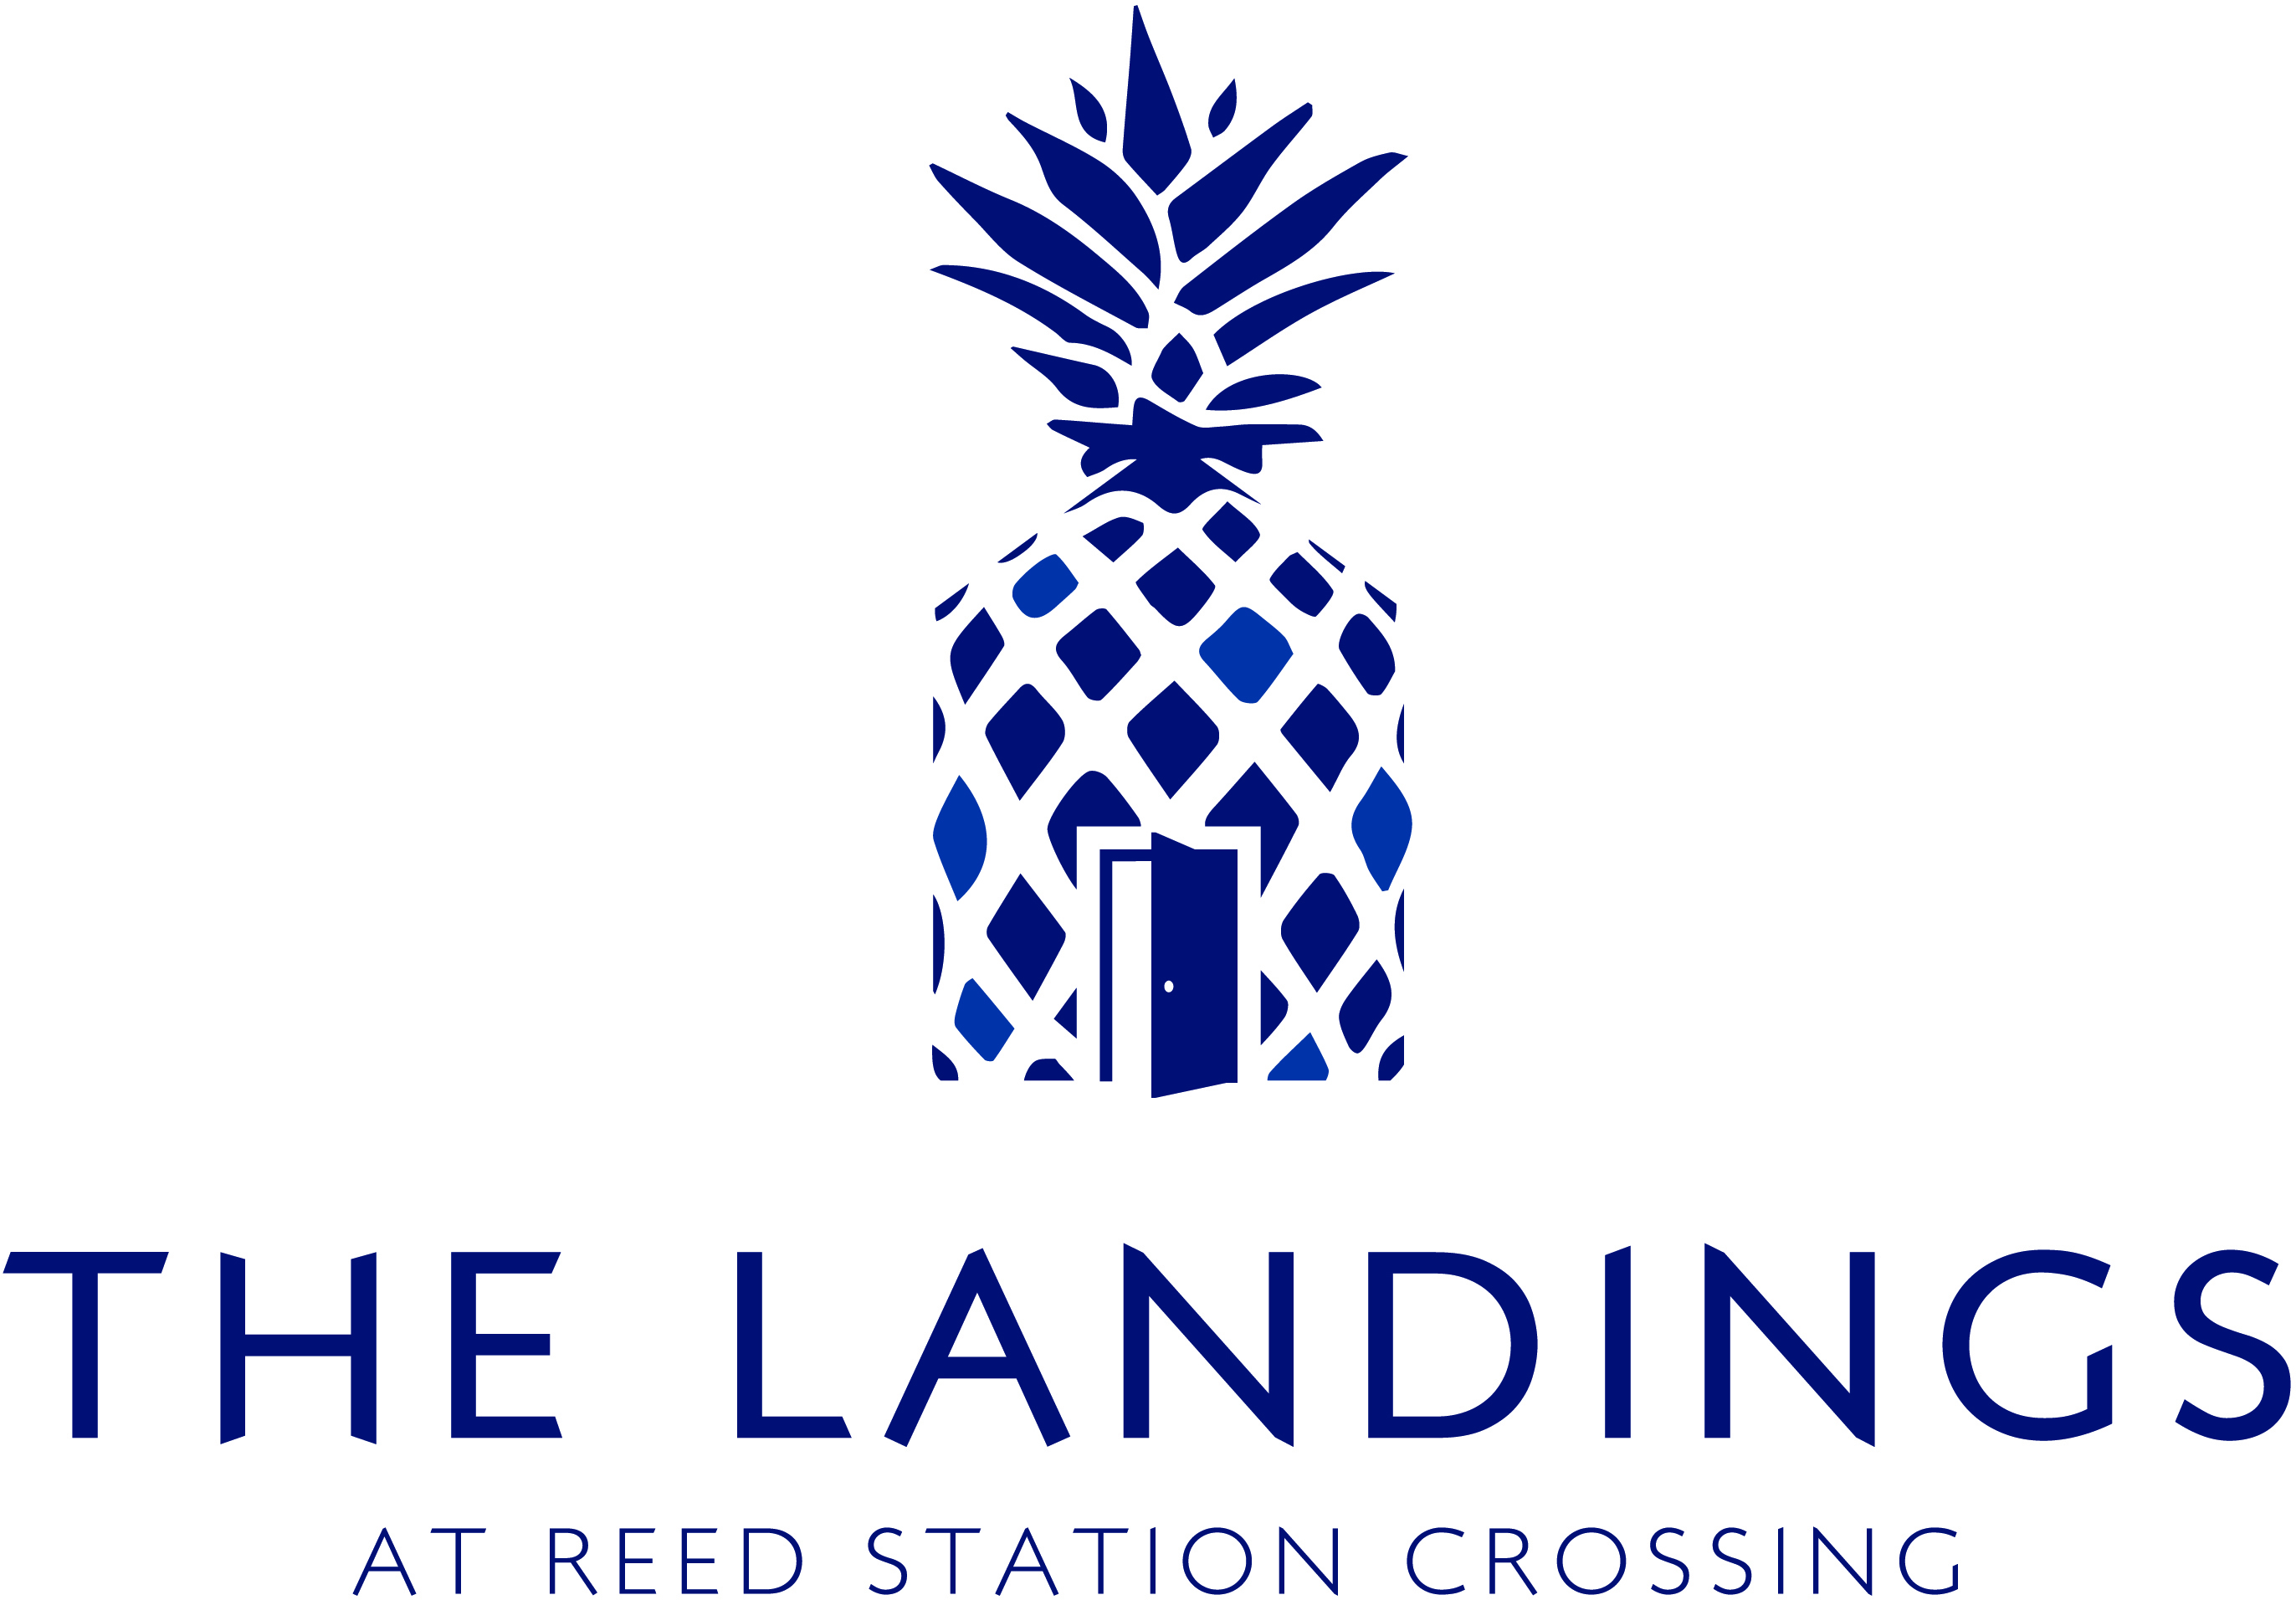 02. The Landings at Reed Station Crossing (Gold)